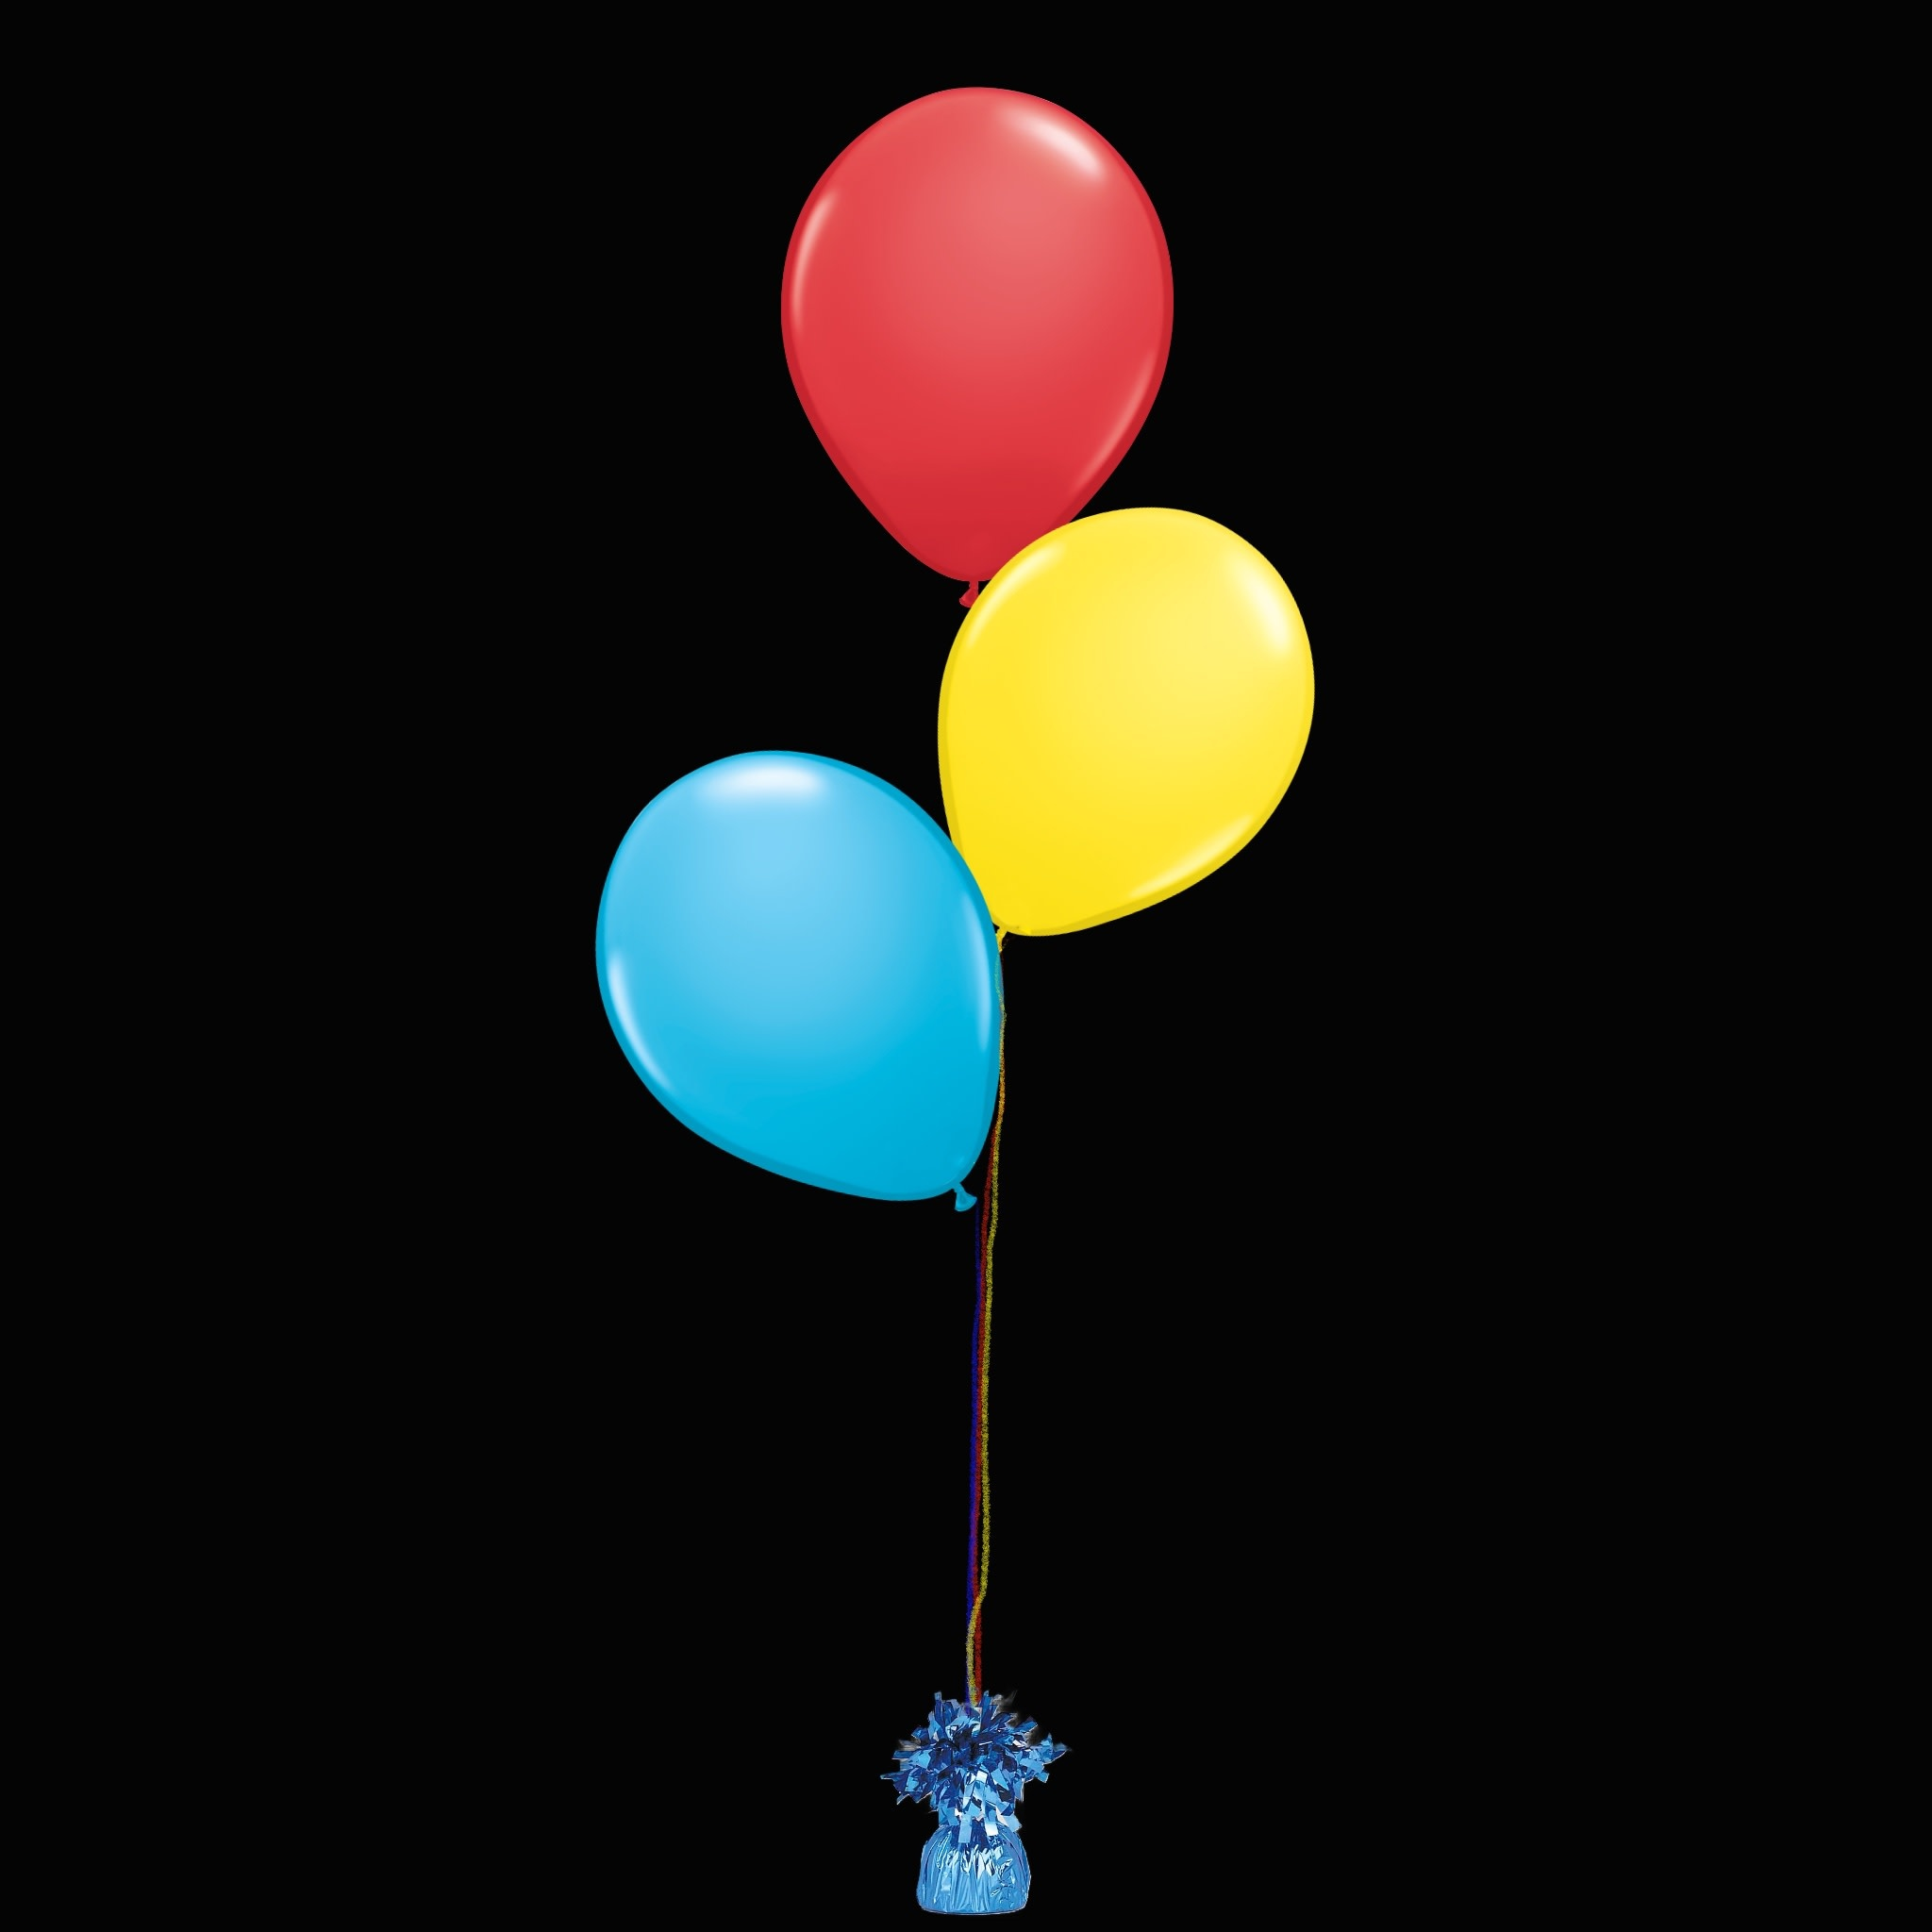 3 Balloons to a Weight Not-Treated